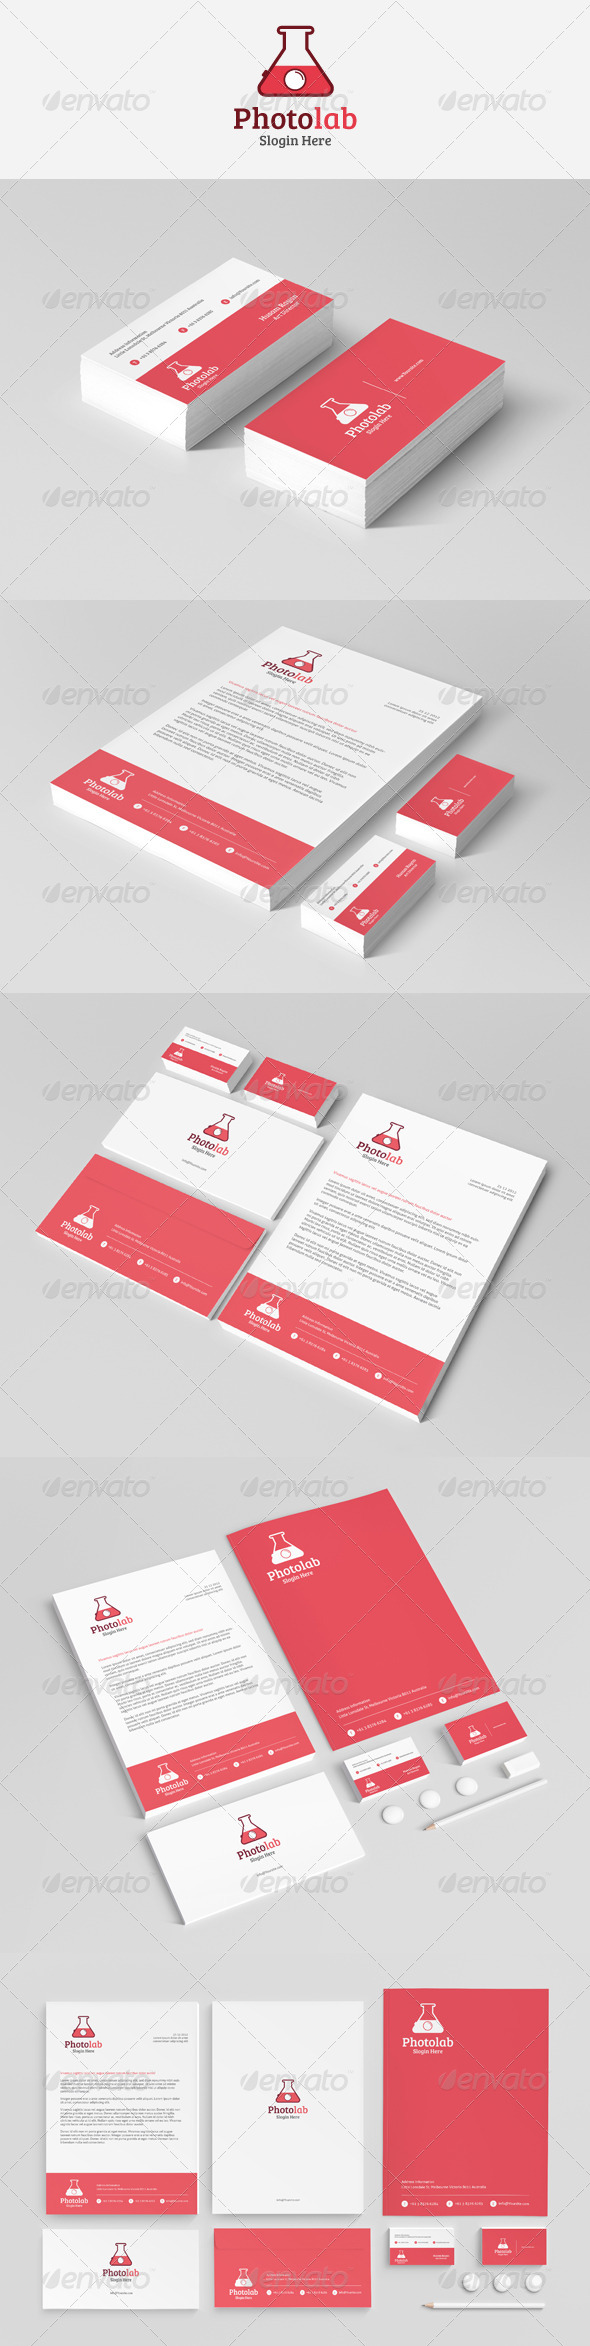 GraphicRiver Photolab Stationery 4349792